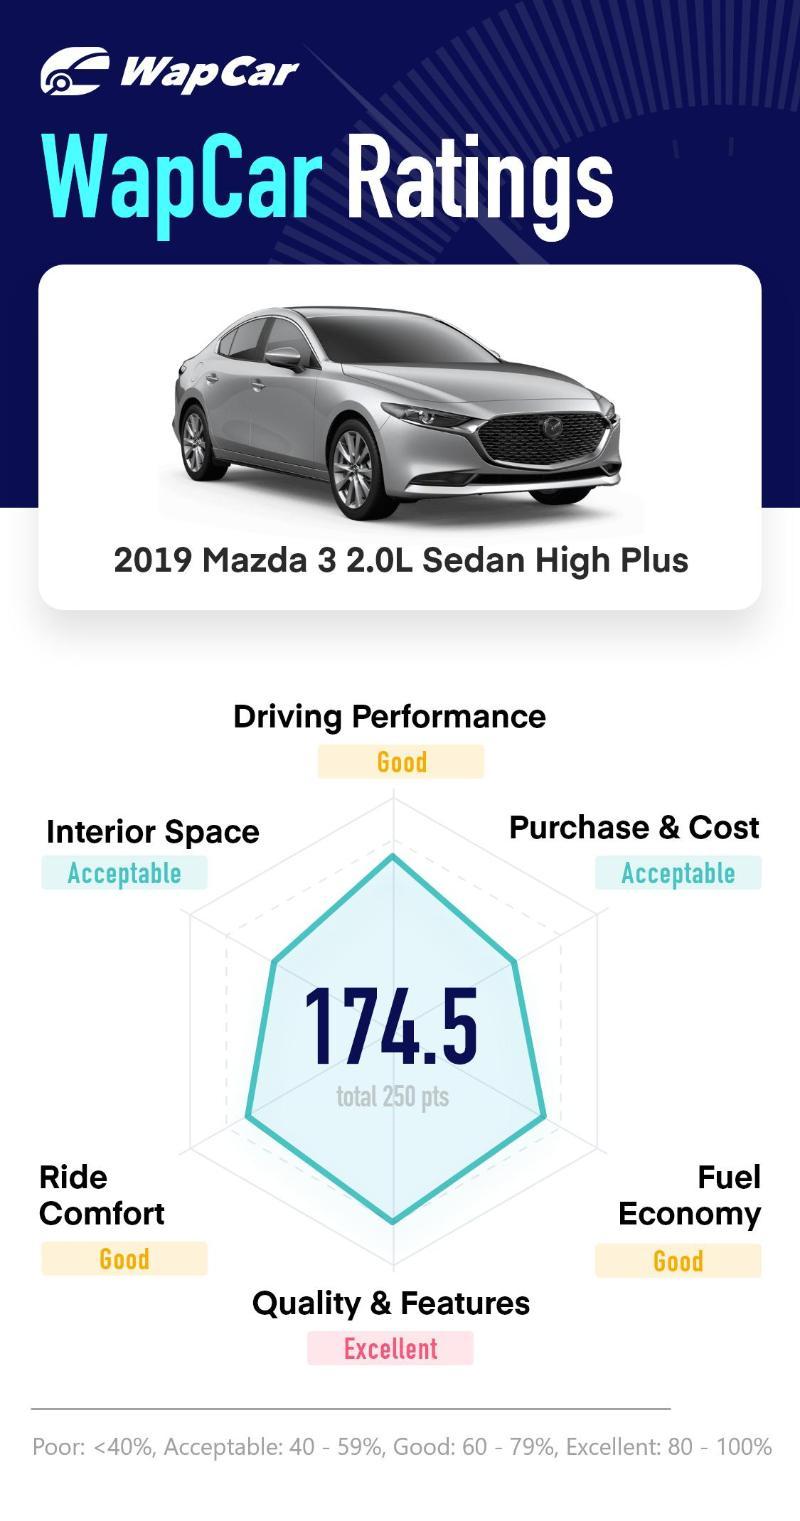 Ratings: 2019 Mazda 3 2.0L Sedan High Plus – Top marks in quality, 174.5 overall 02